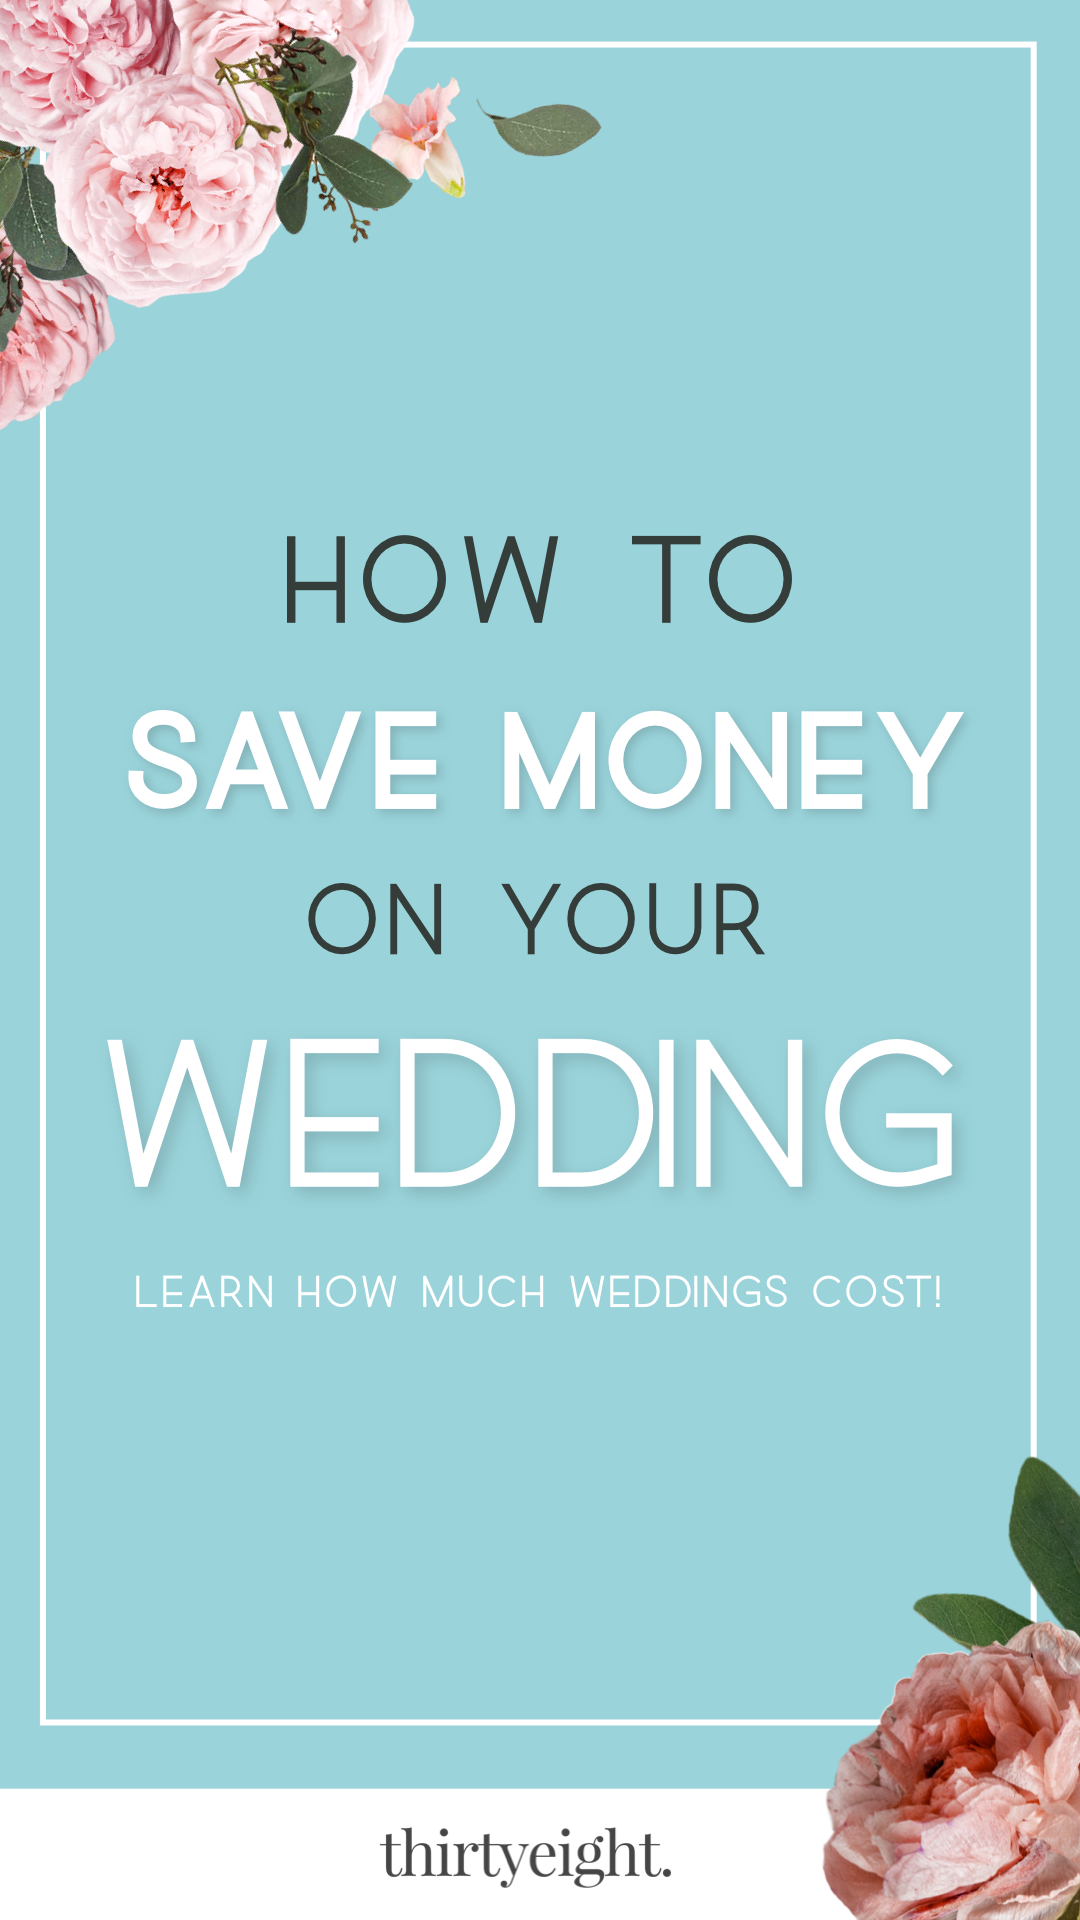 The Average Cost Of Wedding Decorations Thirtyeight Investing In 2020 Weddings Under 5000 Wedding Costs Saving Money